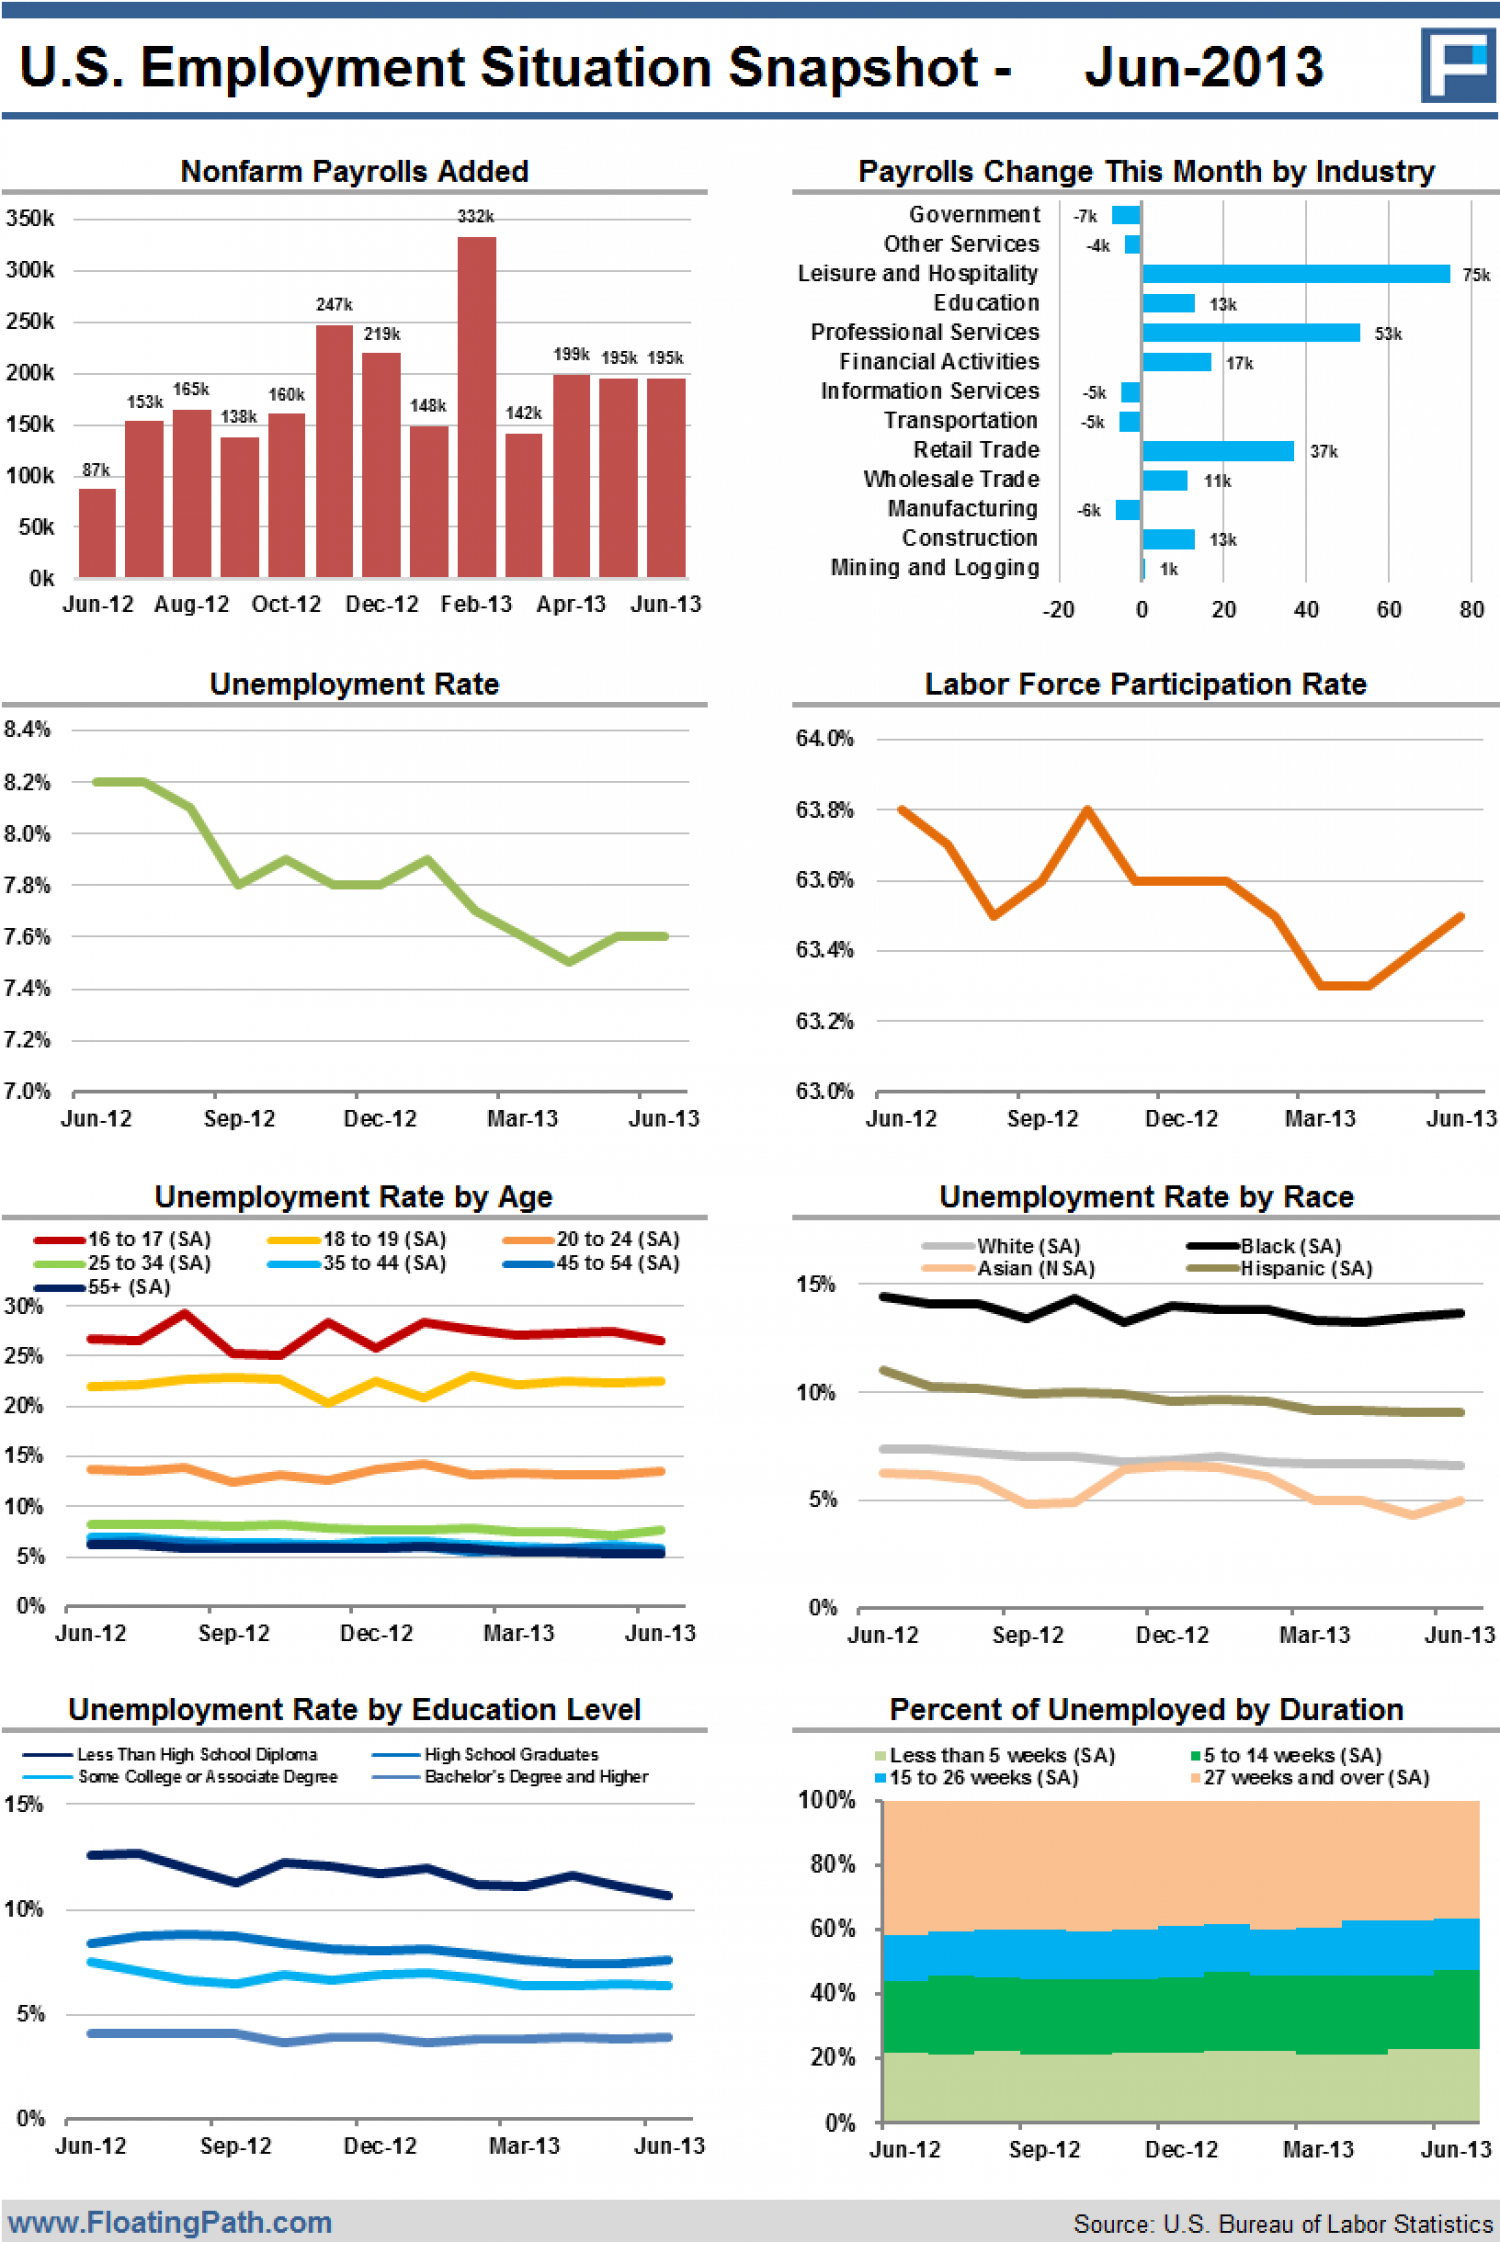 U.S. Employment Situation Snapshot - June 2013 Infographic